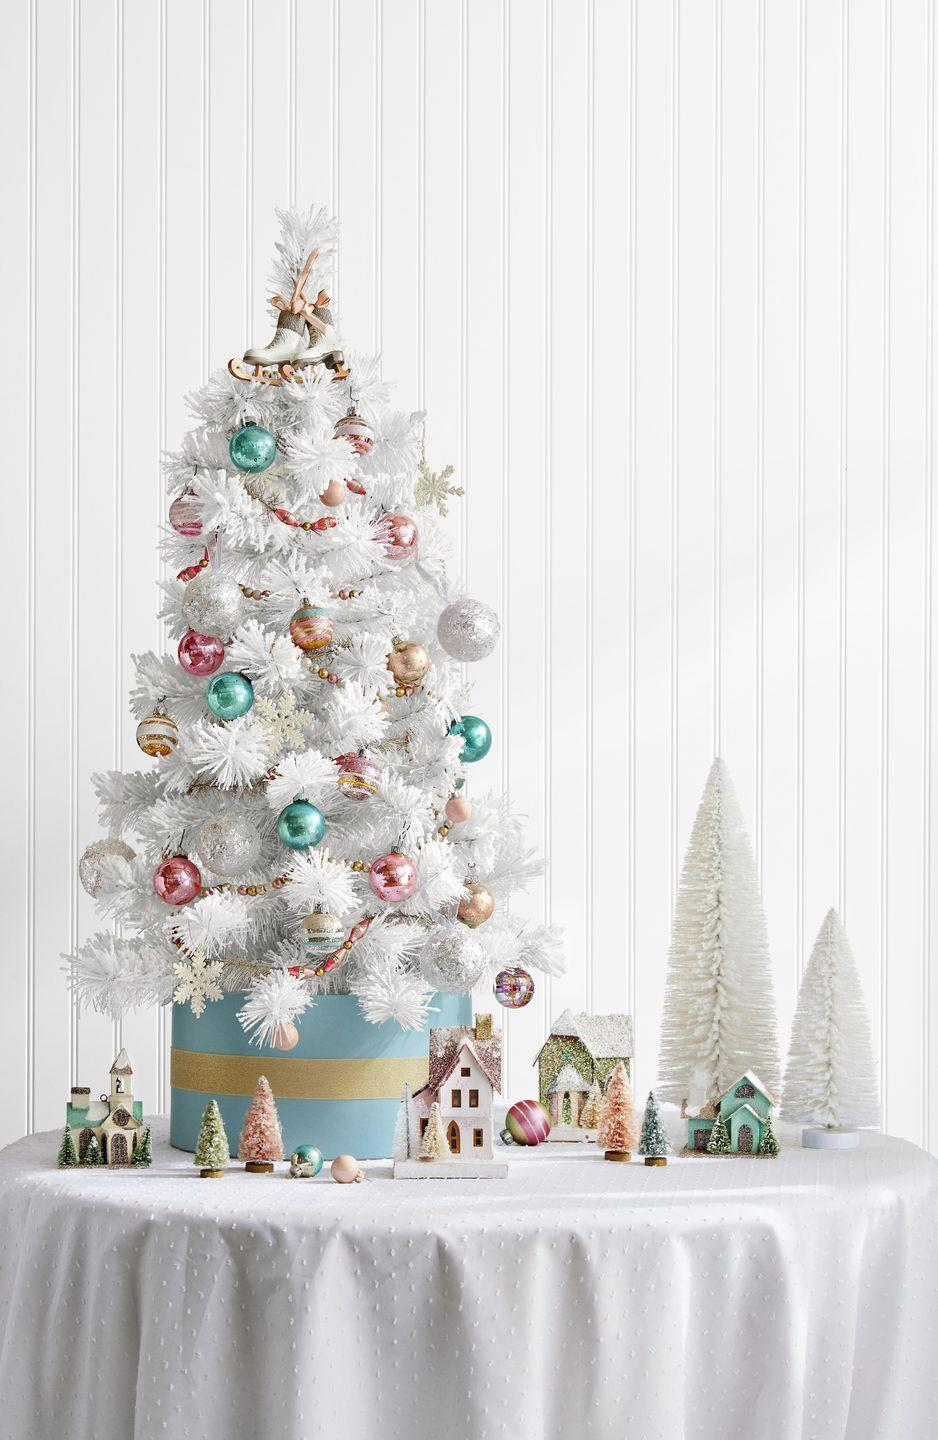 "<p>Sure, the sparkling snowflakes, pastel baubles, and ice-skate topper on this tree are lovely. But we're most drawn to the DIY tree stand here: a simple hatbox. Talk about old-fashioned glamour!</p><p><a class=""link rapid-noclick-resp"" href=""https://www.amazon.com/Darice-Paper-Mache-Craft-Boxes/dp/B001K7N1IA/ref=sr_1_41?tag=syn-yahoo-20&ascsubtag=%5Bartid%7C10050.g.28746492%5Bsrc%7Cyahoo-us"" rel=""nofollow noopener"" target=""_blank"" data-ylk=""slk:SHOP HATBOXES"">SHOP HATBOXES</a></p>"